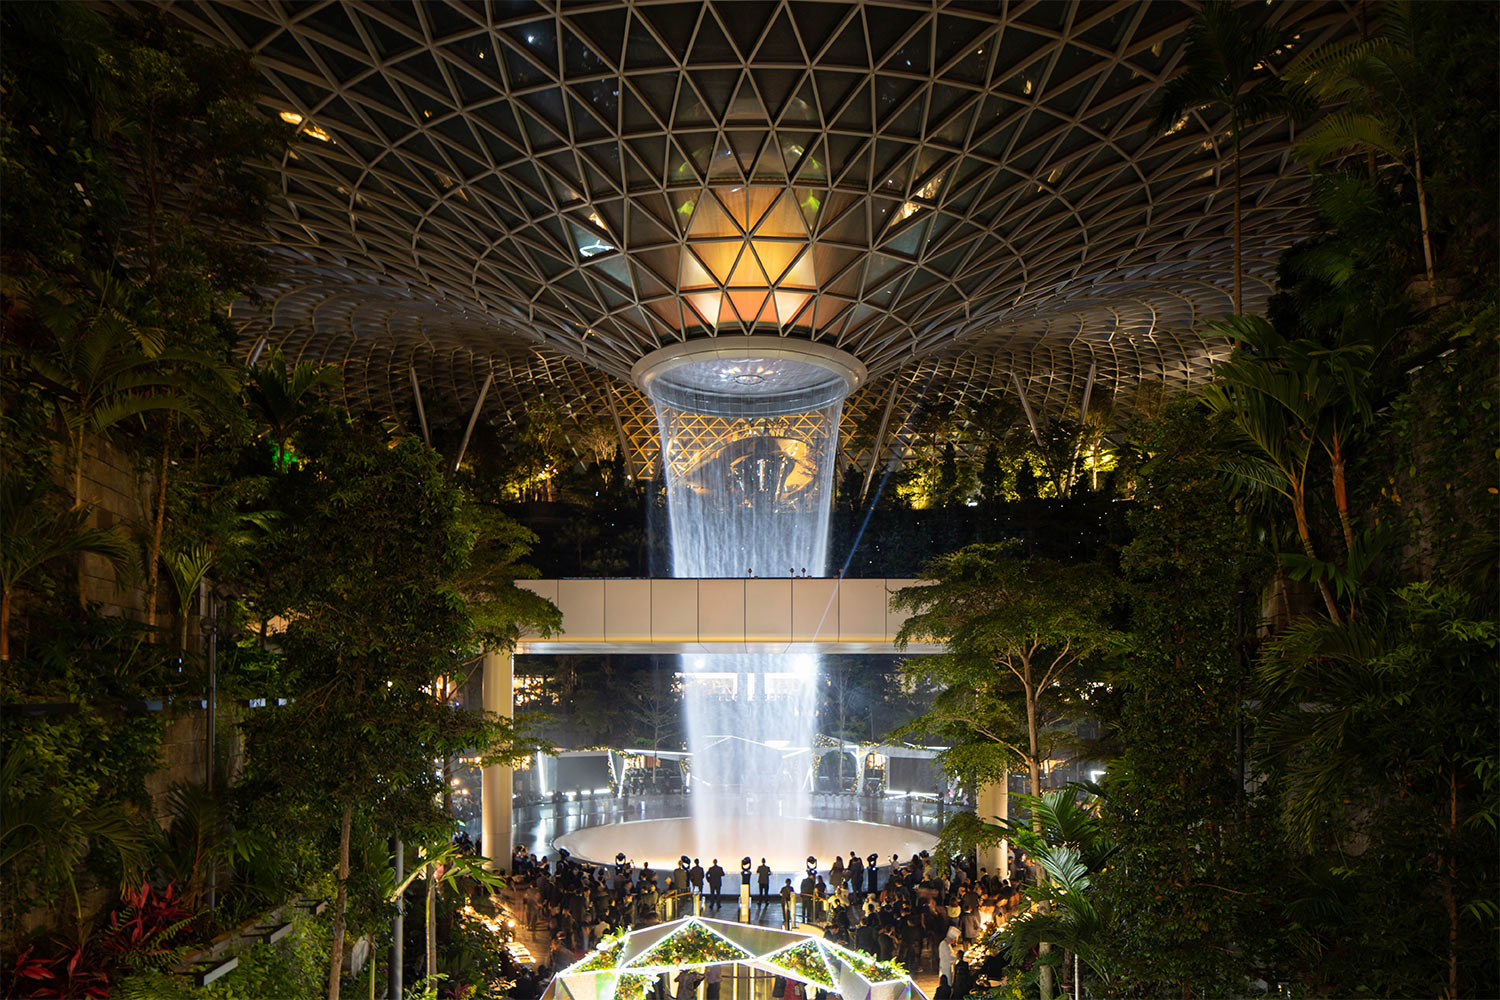 View at night of Jewel Changi Airport's Rain Vortex illuminated by lights